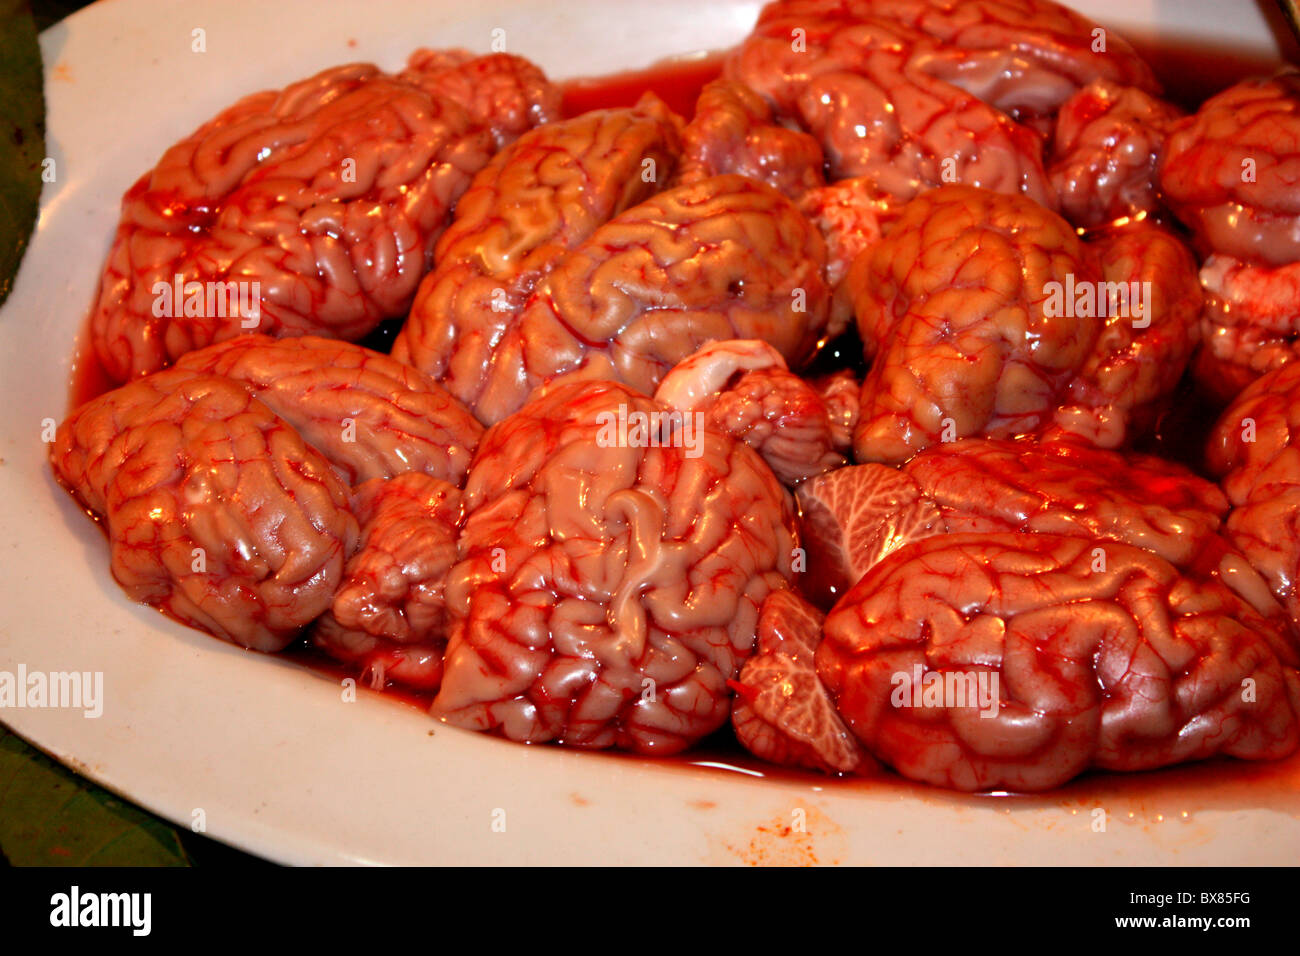 Goat brains( uncooked) on display in a food stall at Murree, Pakistan - Stock Image